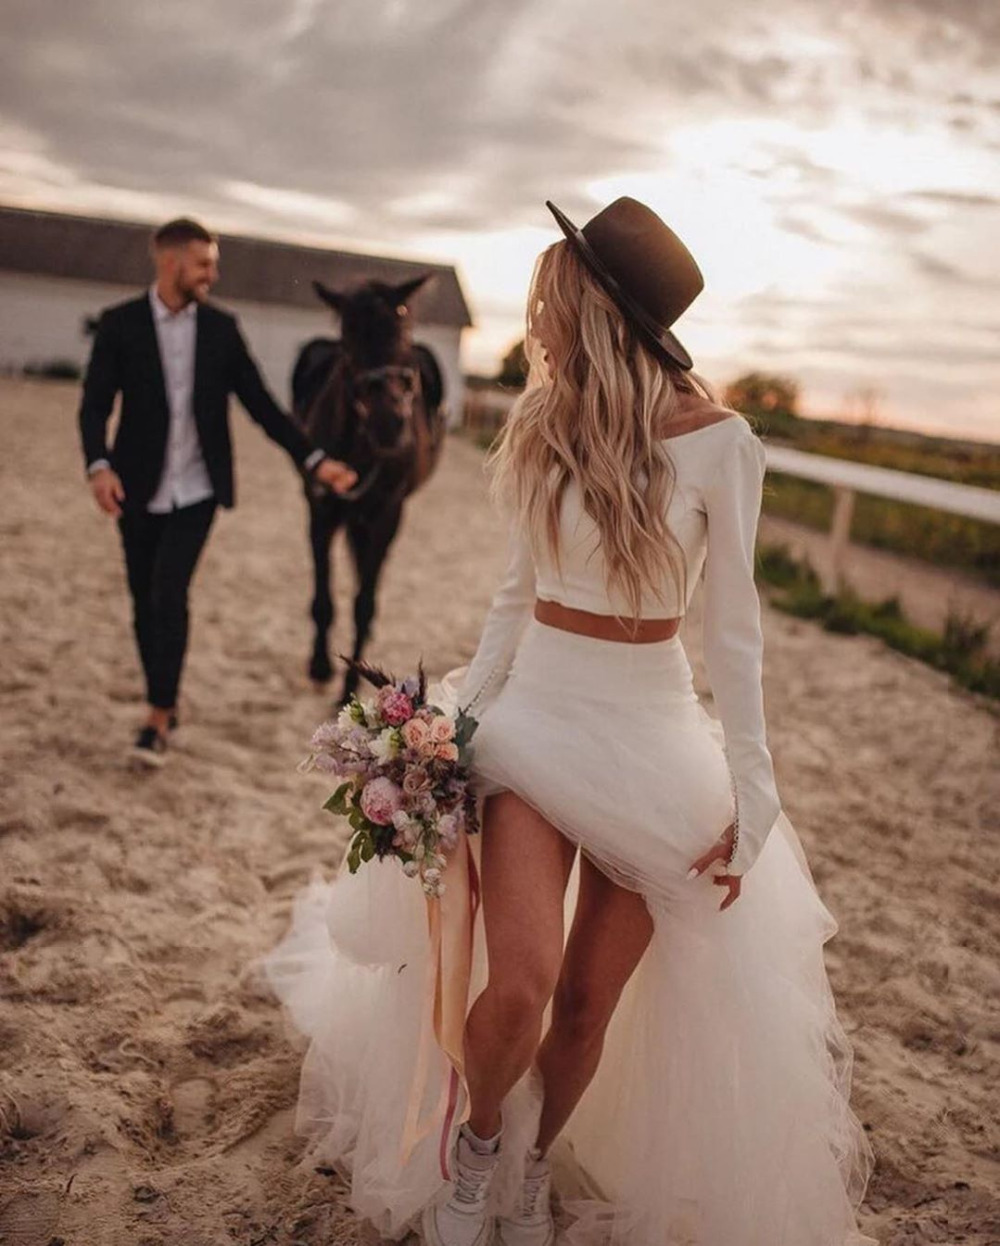 O Gown Vintage Wedding Robe 2021 Beach Bohemian Bridal Sleeve Neck New Long Mariee Dresses Pieces Vintage De Two Wedding Gown